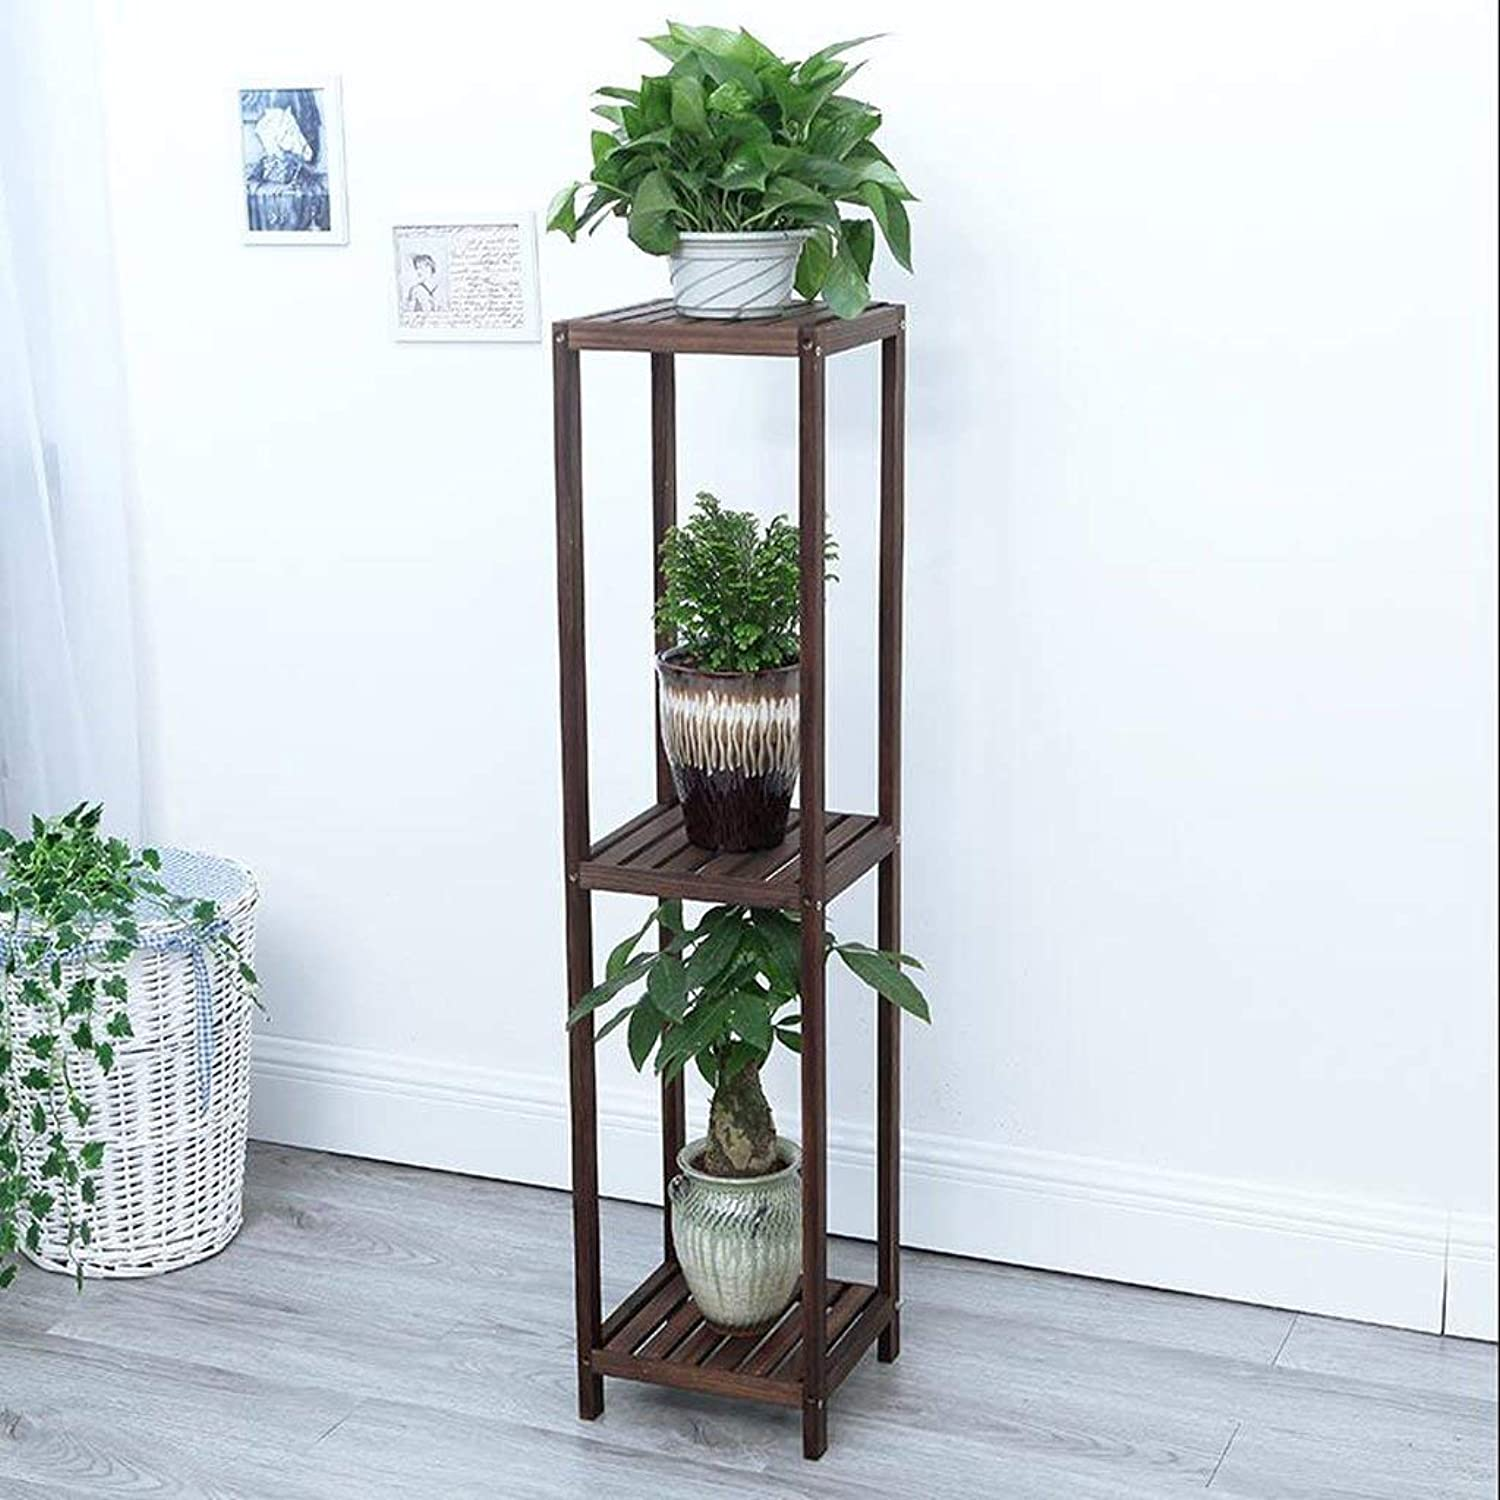 Gifts & Decor Plant Stand Shelf Flower Racks Solid Wood Flower Stand Plant Stand Indoor Balcony Flower Stand Multi-Layer Floor Shelf Three-Dimensional Flower Stand Solid Wood Material